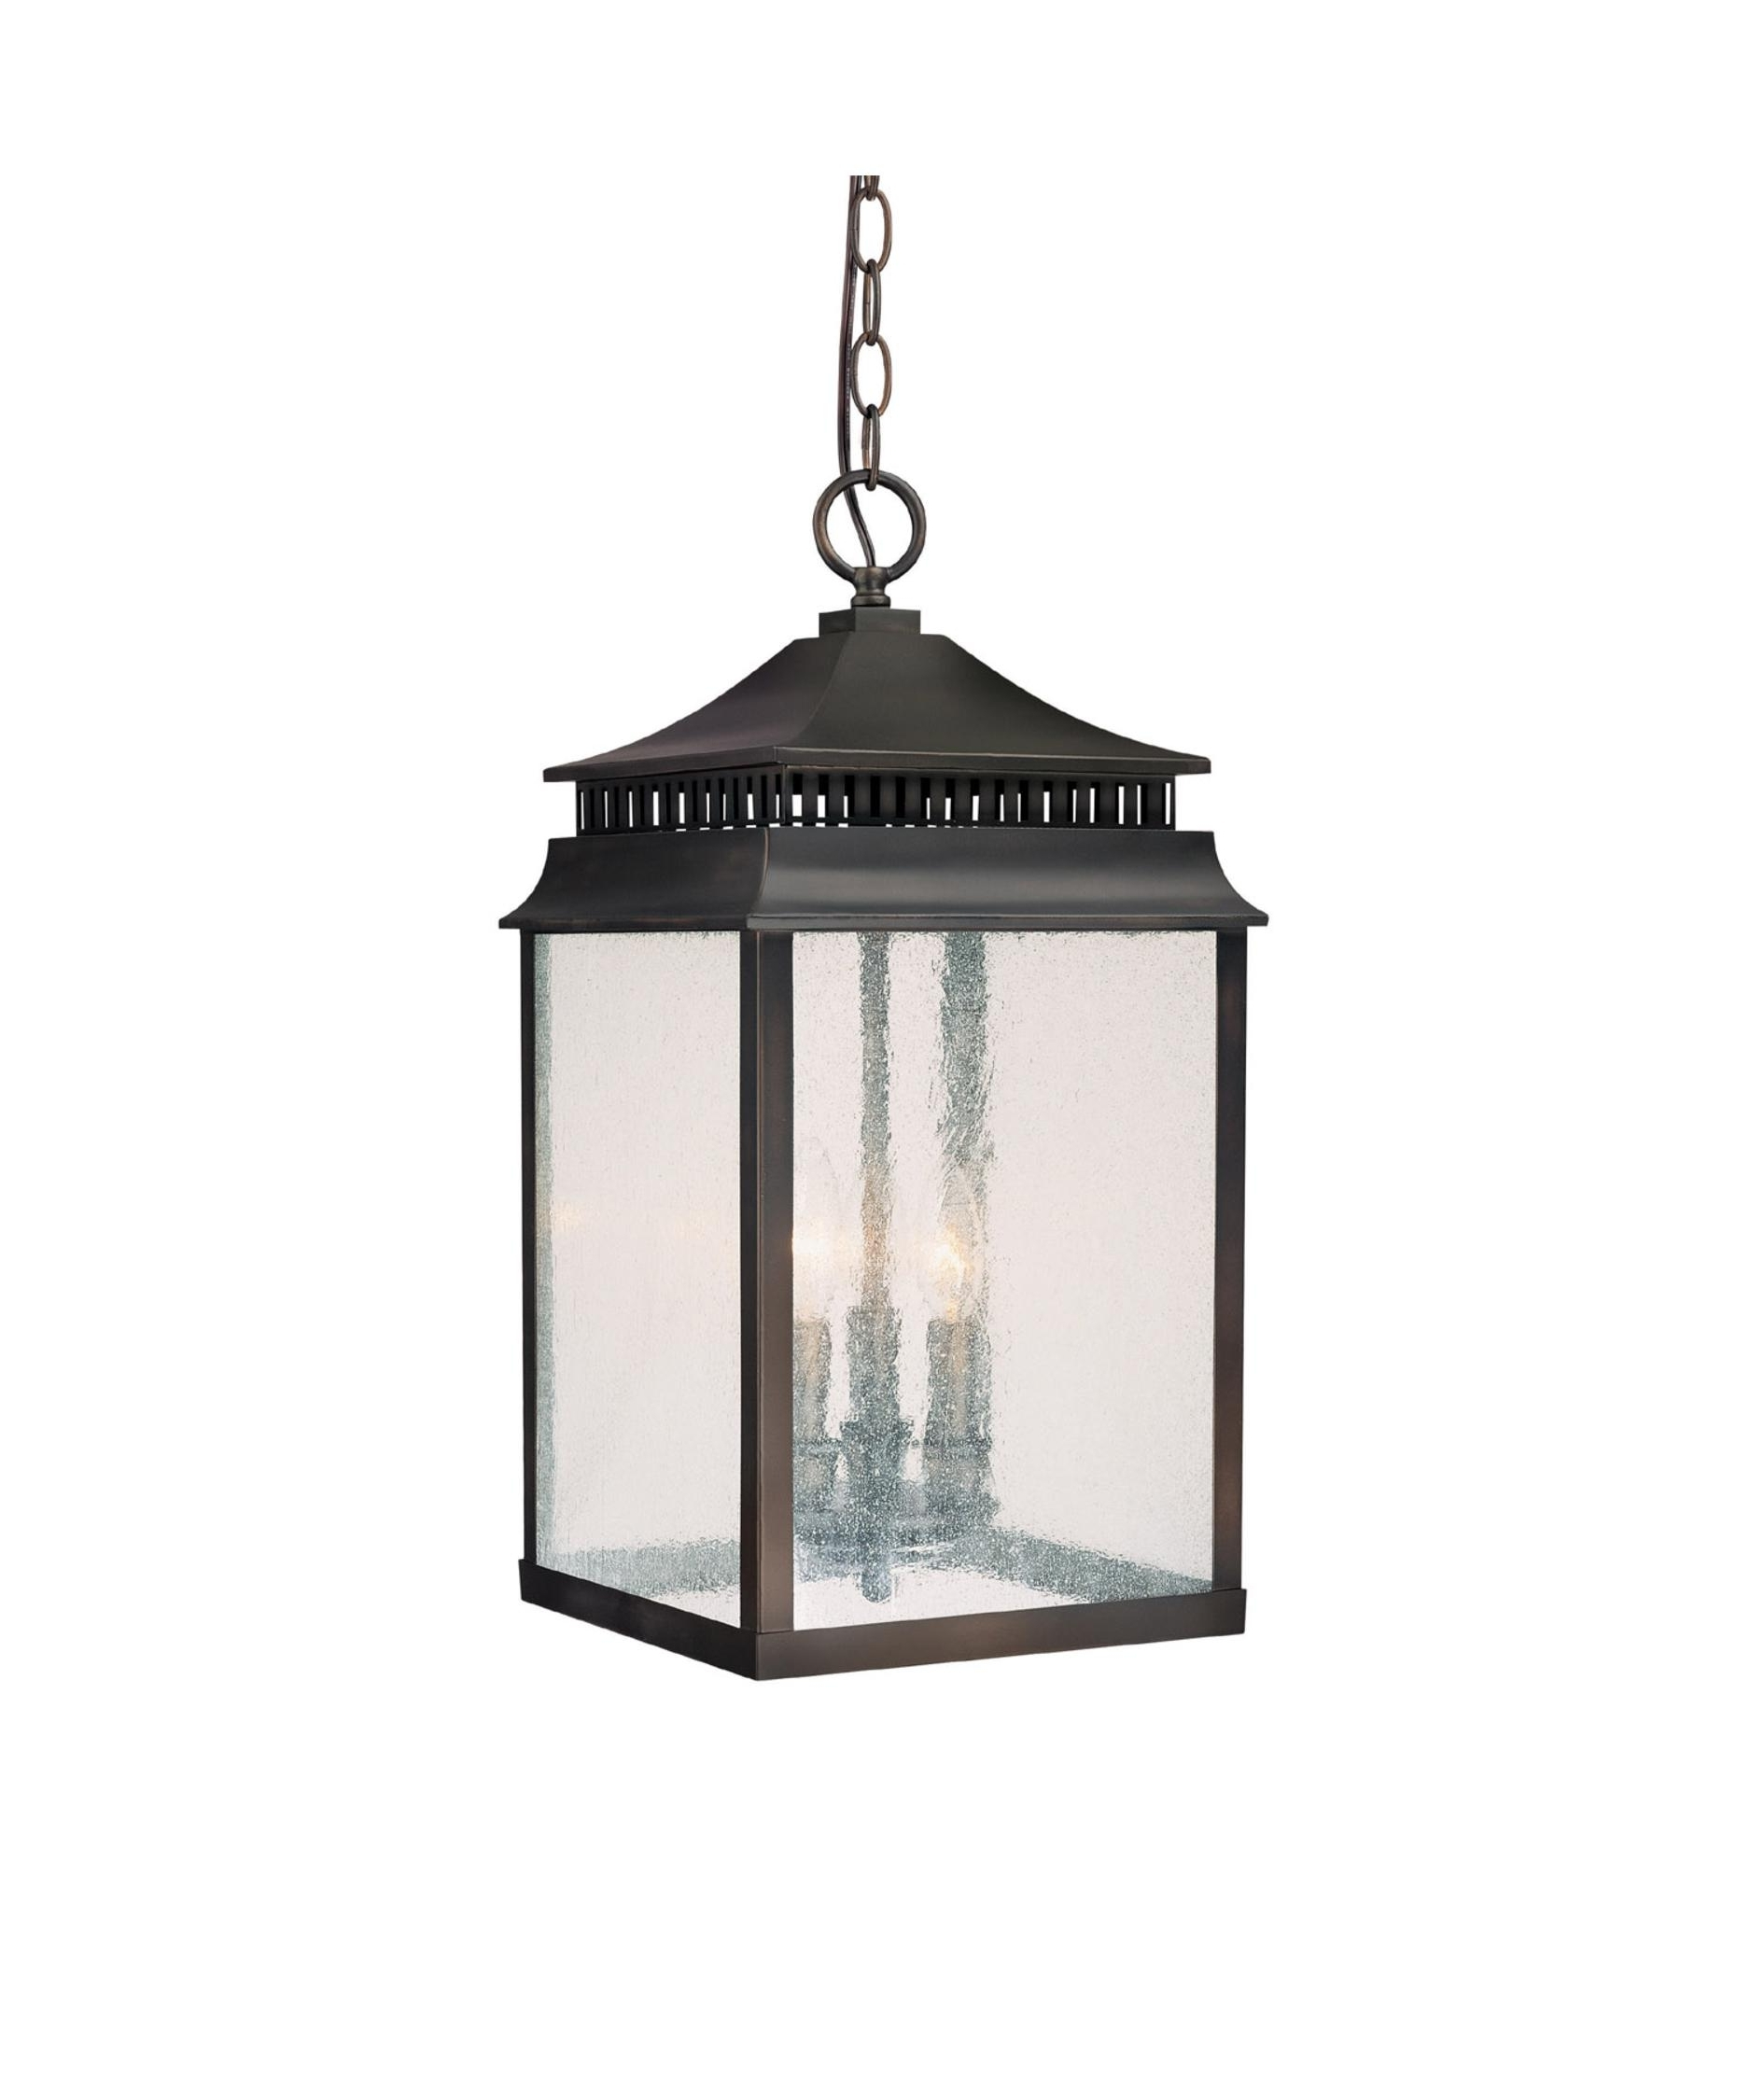 Capital Lighting 9116 Sutter Creek 10 Inch Wide 3 Light Outdoor Throughout Most Up To Date Outdoor Porch Lanterns (View 1 of 20)